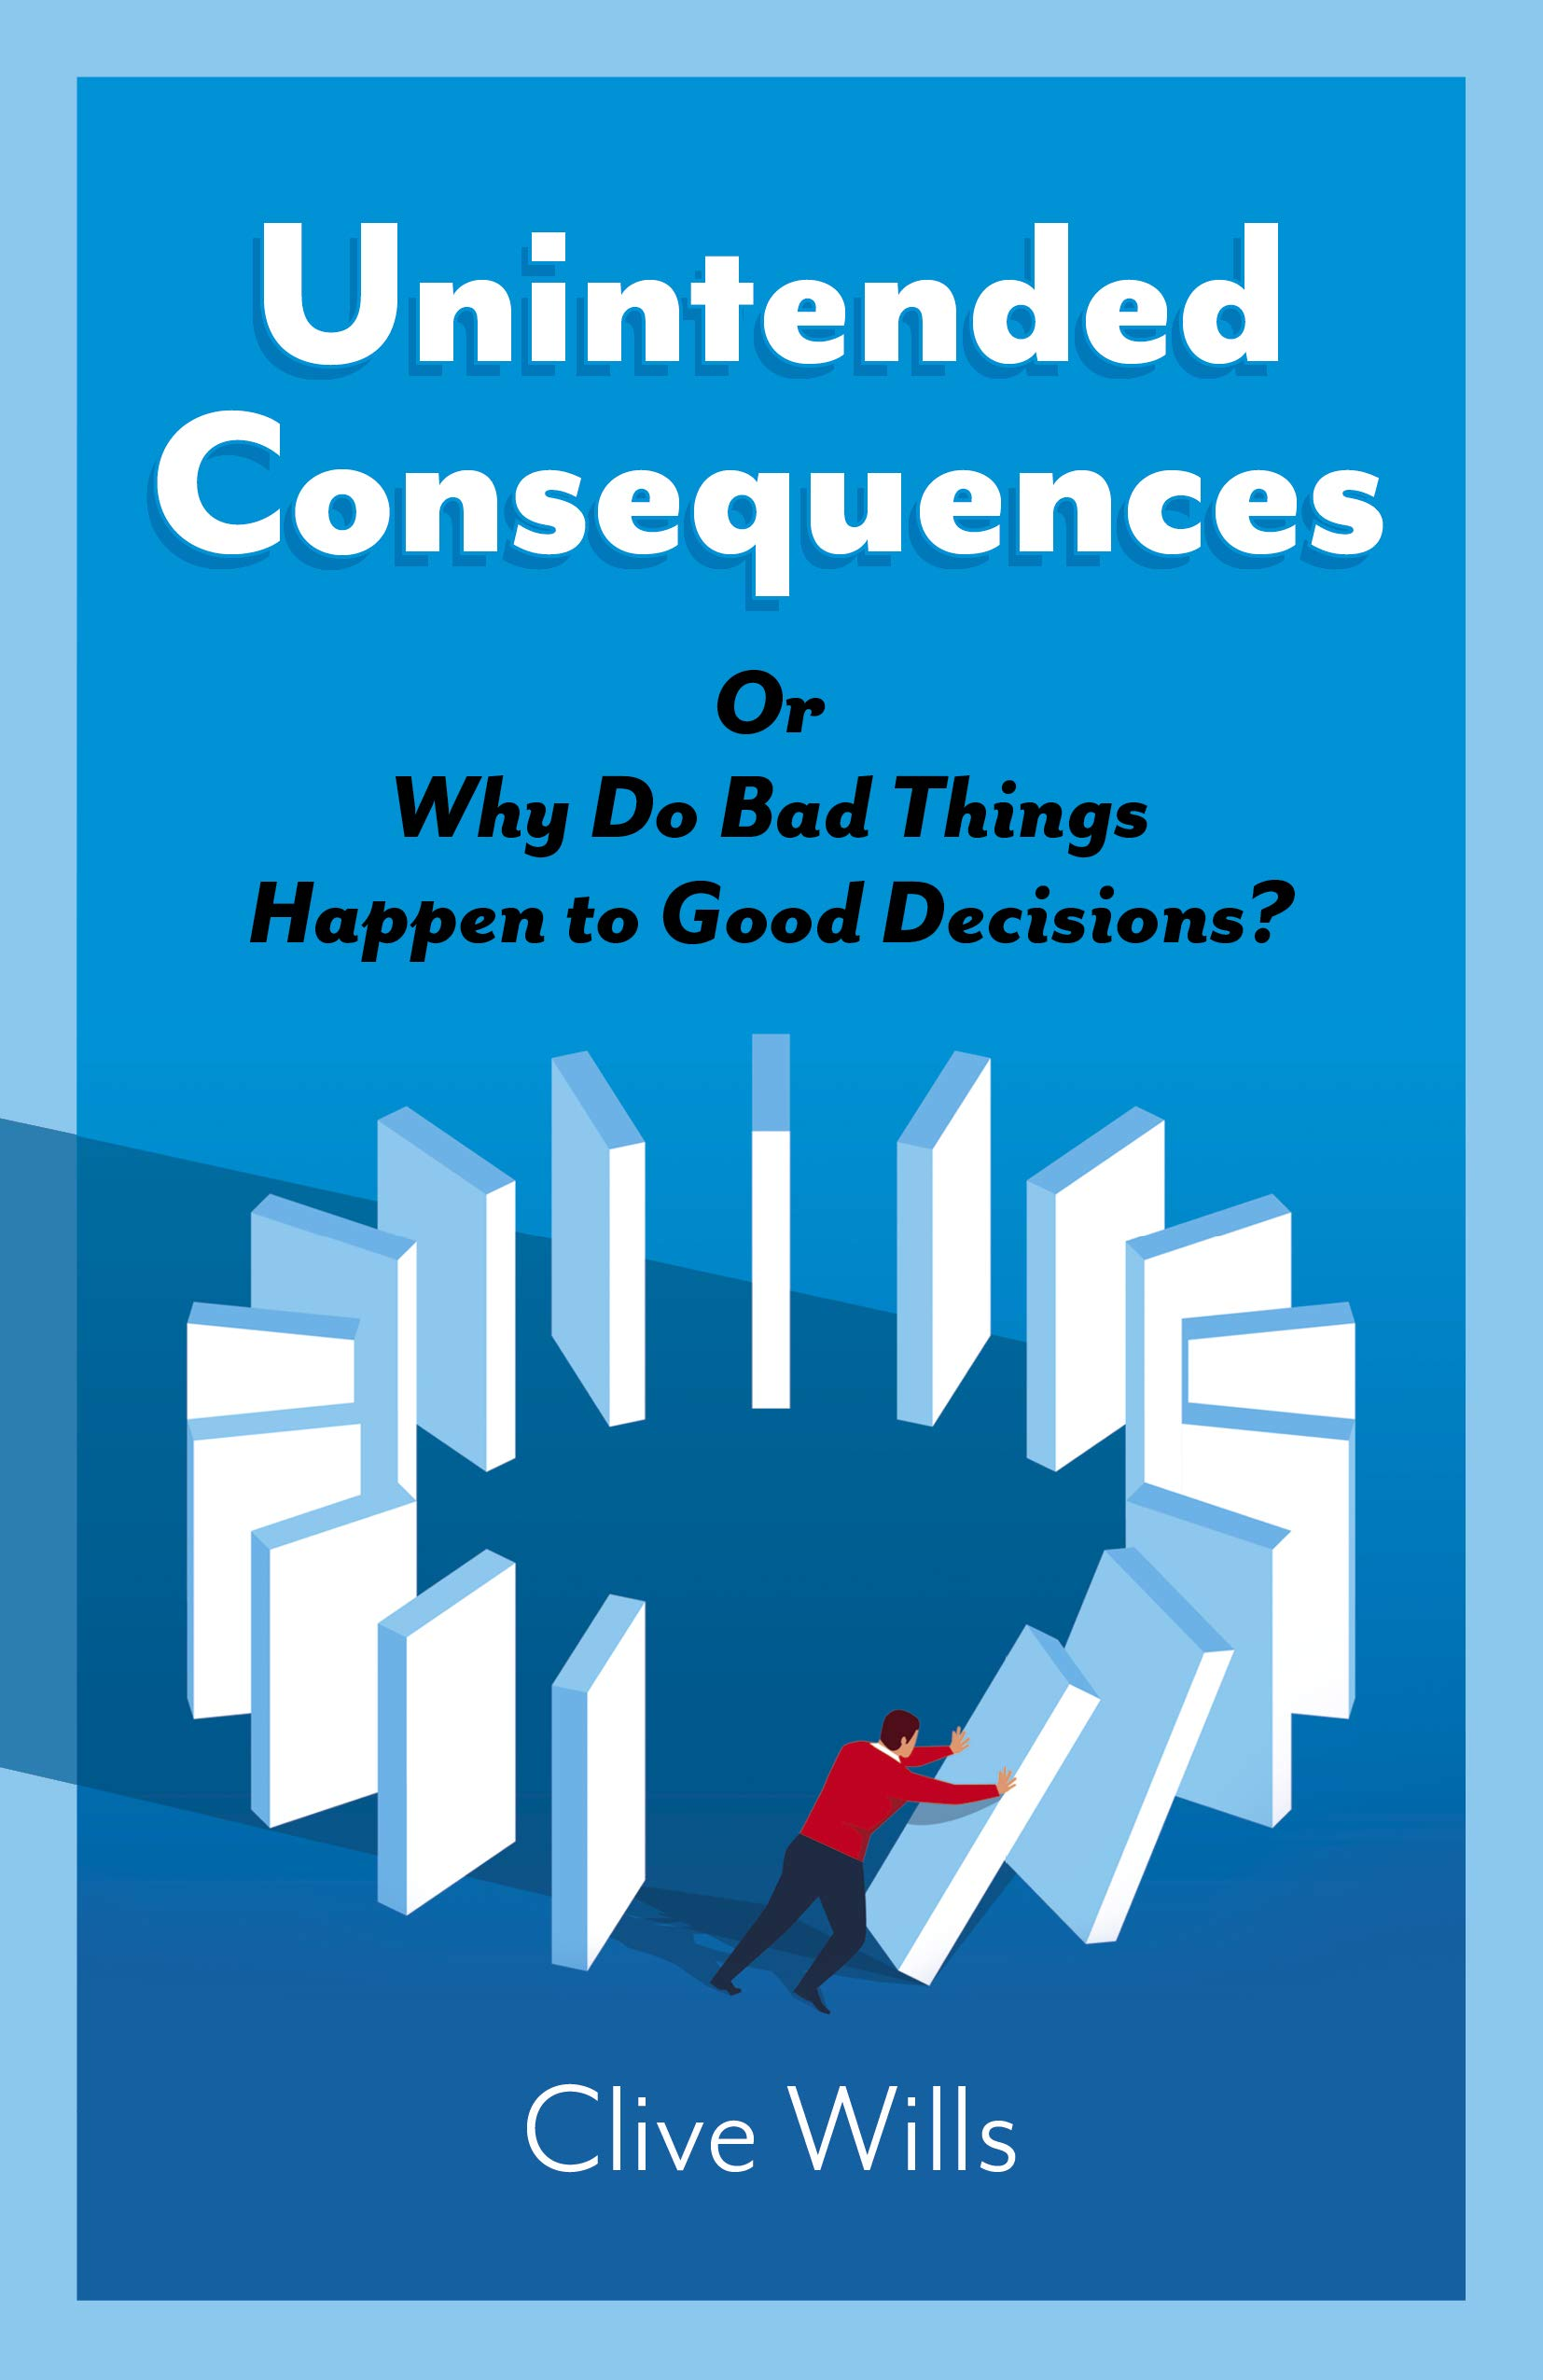 Wills, C: Unintended Consequences: Or Why Do Bad Things Happen to Good  Decisions?: Amazon.es: Wills, Clive: Libros en idiomas extranjeros